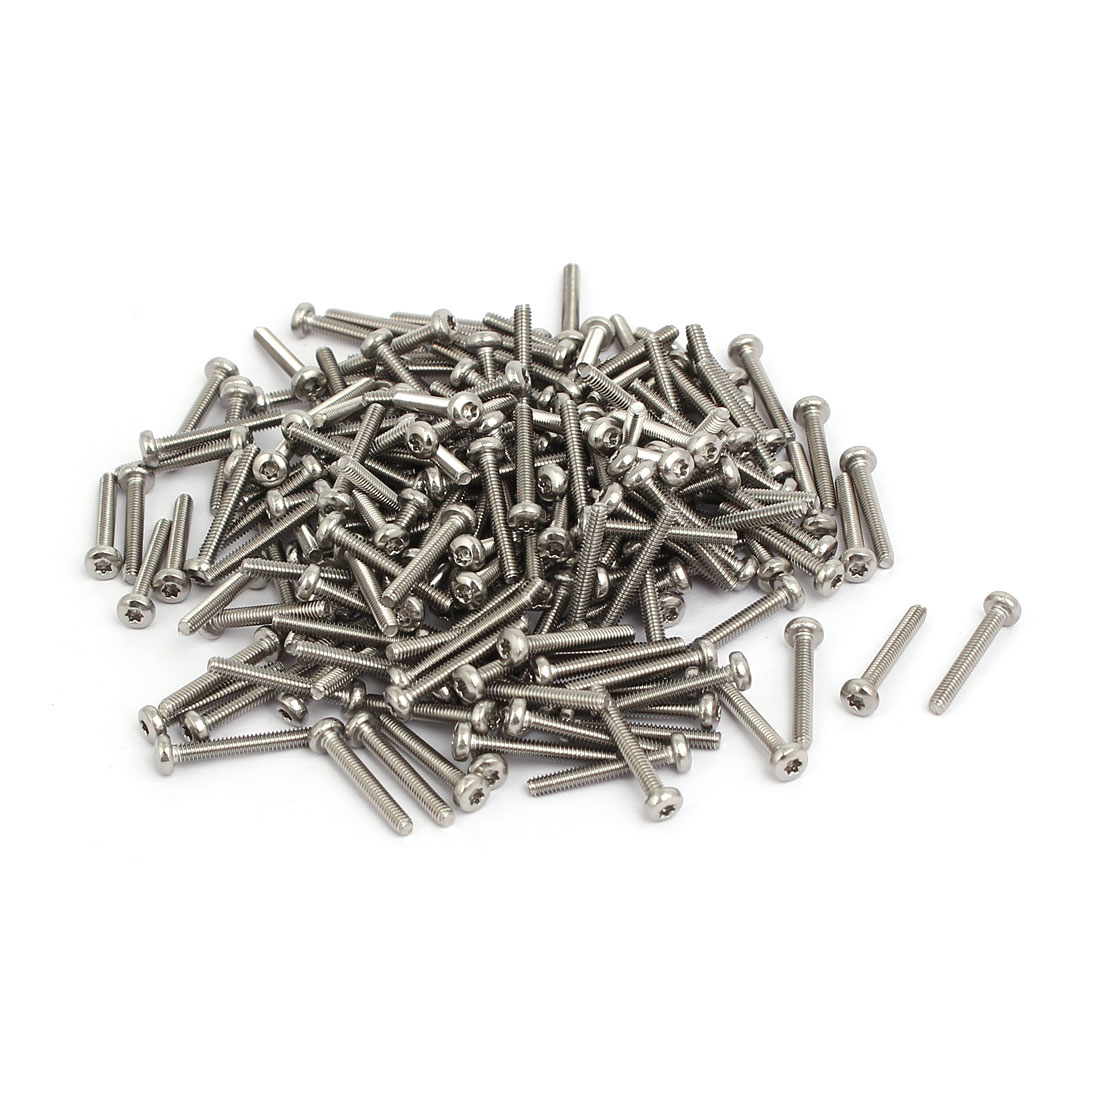 M2x14mm 304 Stainless Steel Button Head Torx Screws Fasteners 200pcs